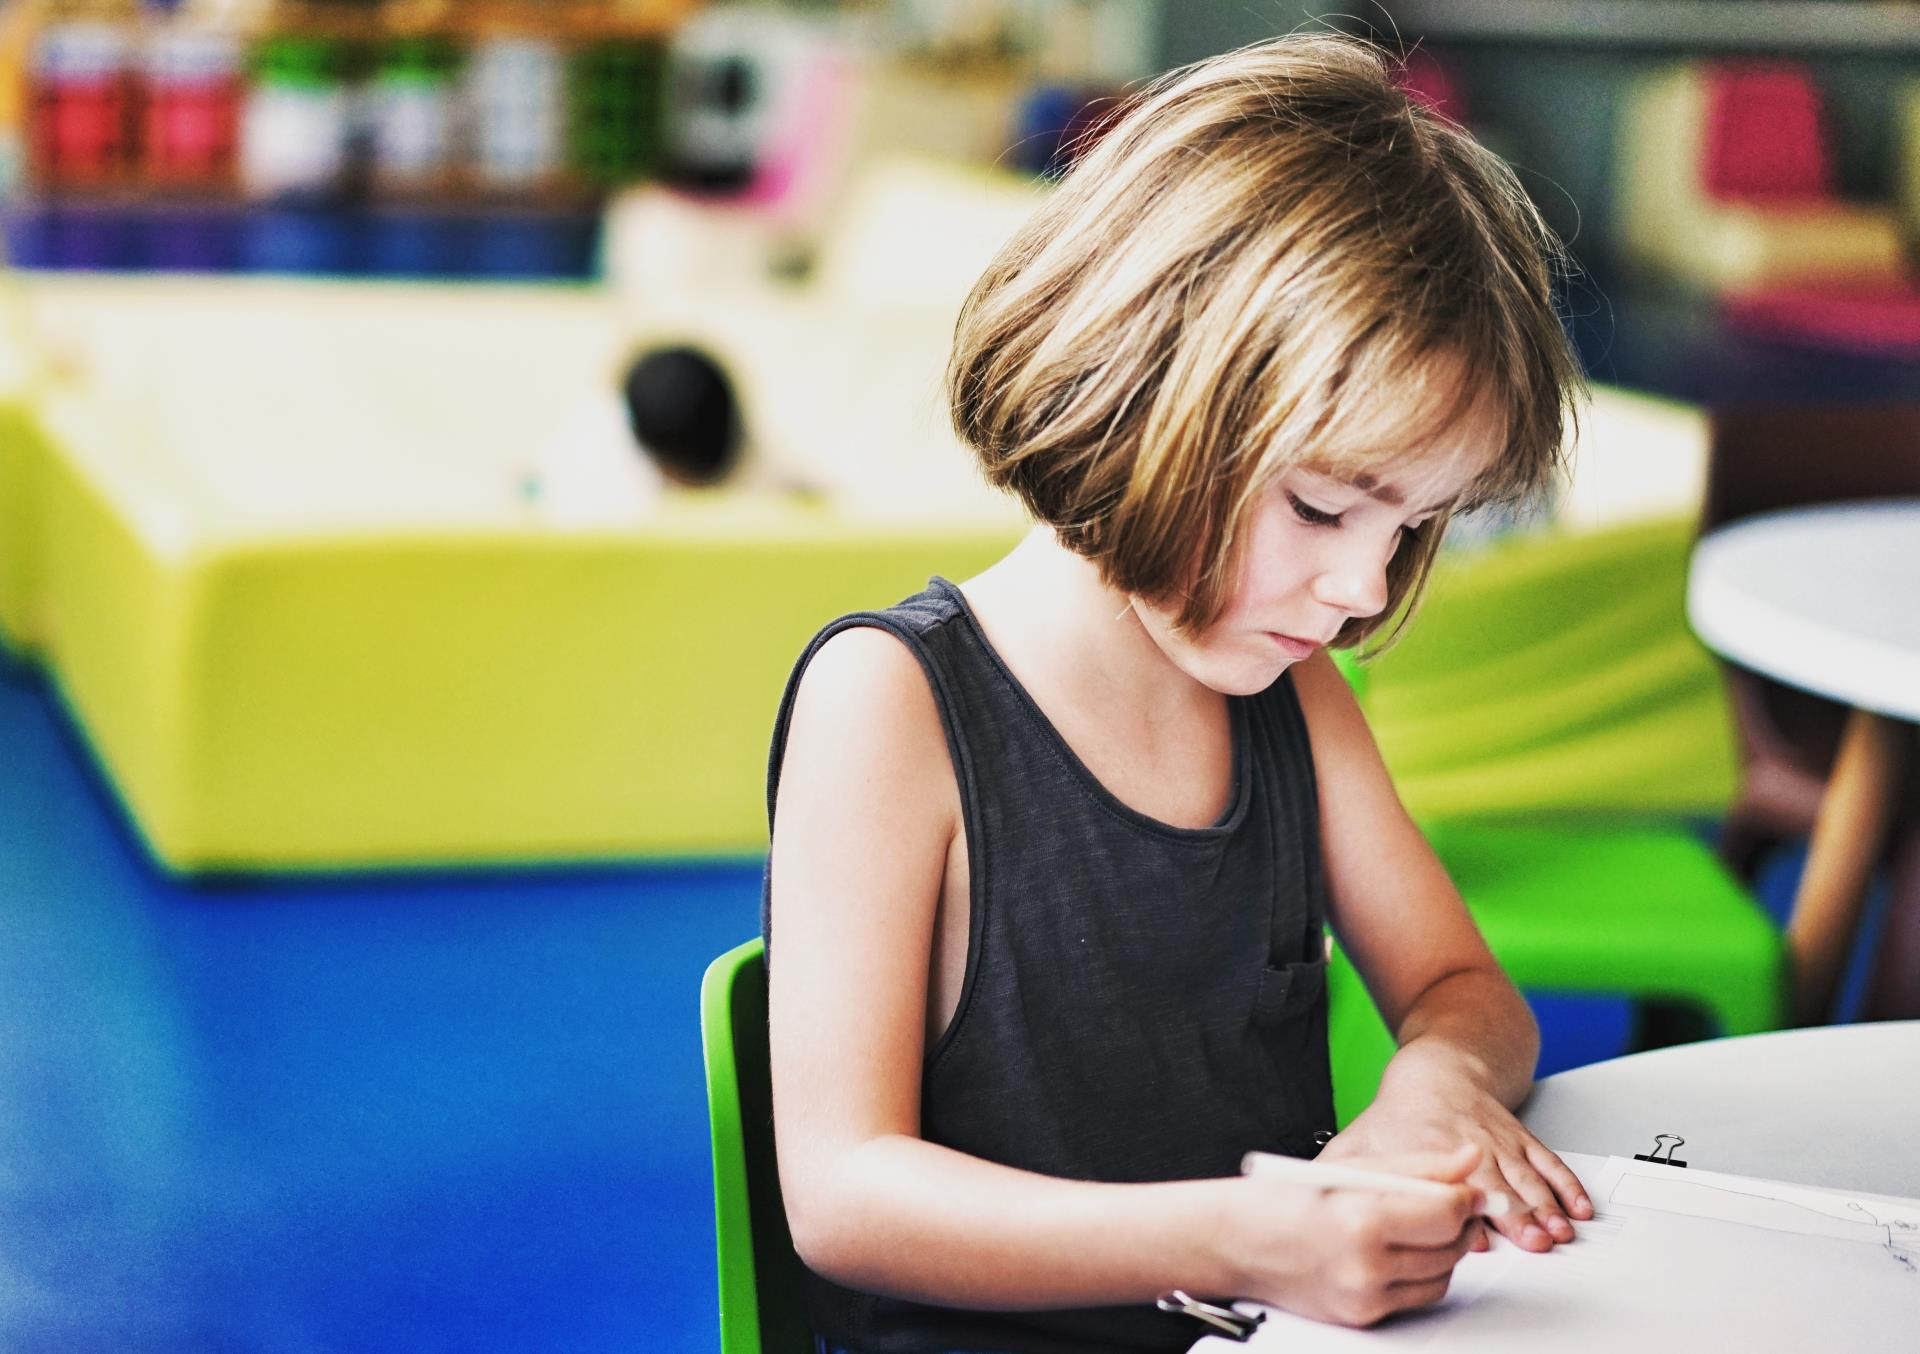 This is a photo of a girl sitting at a table writing.